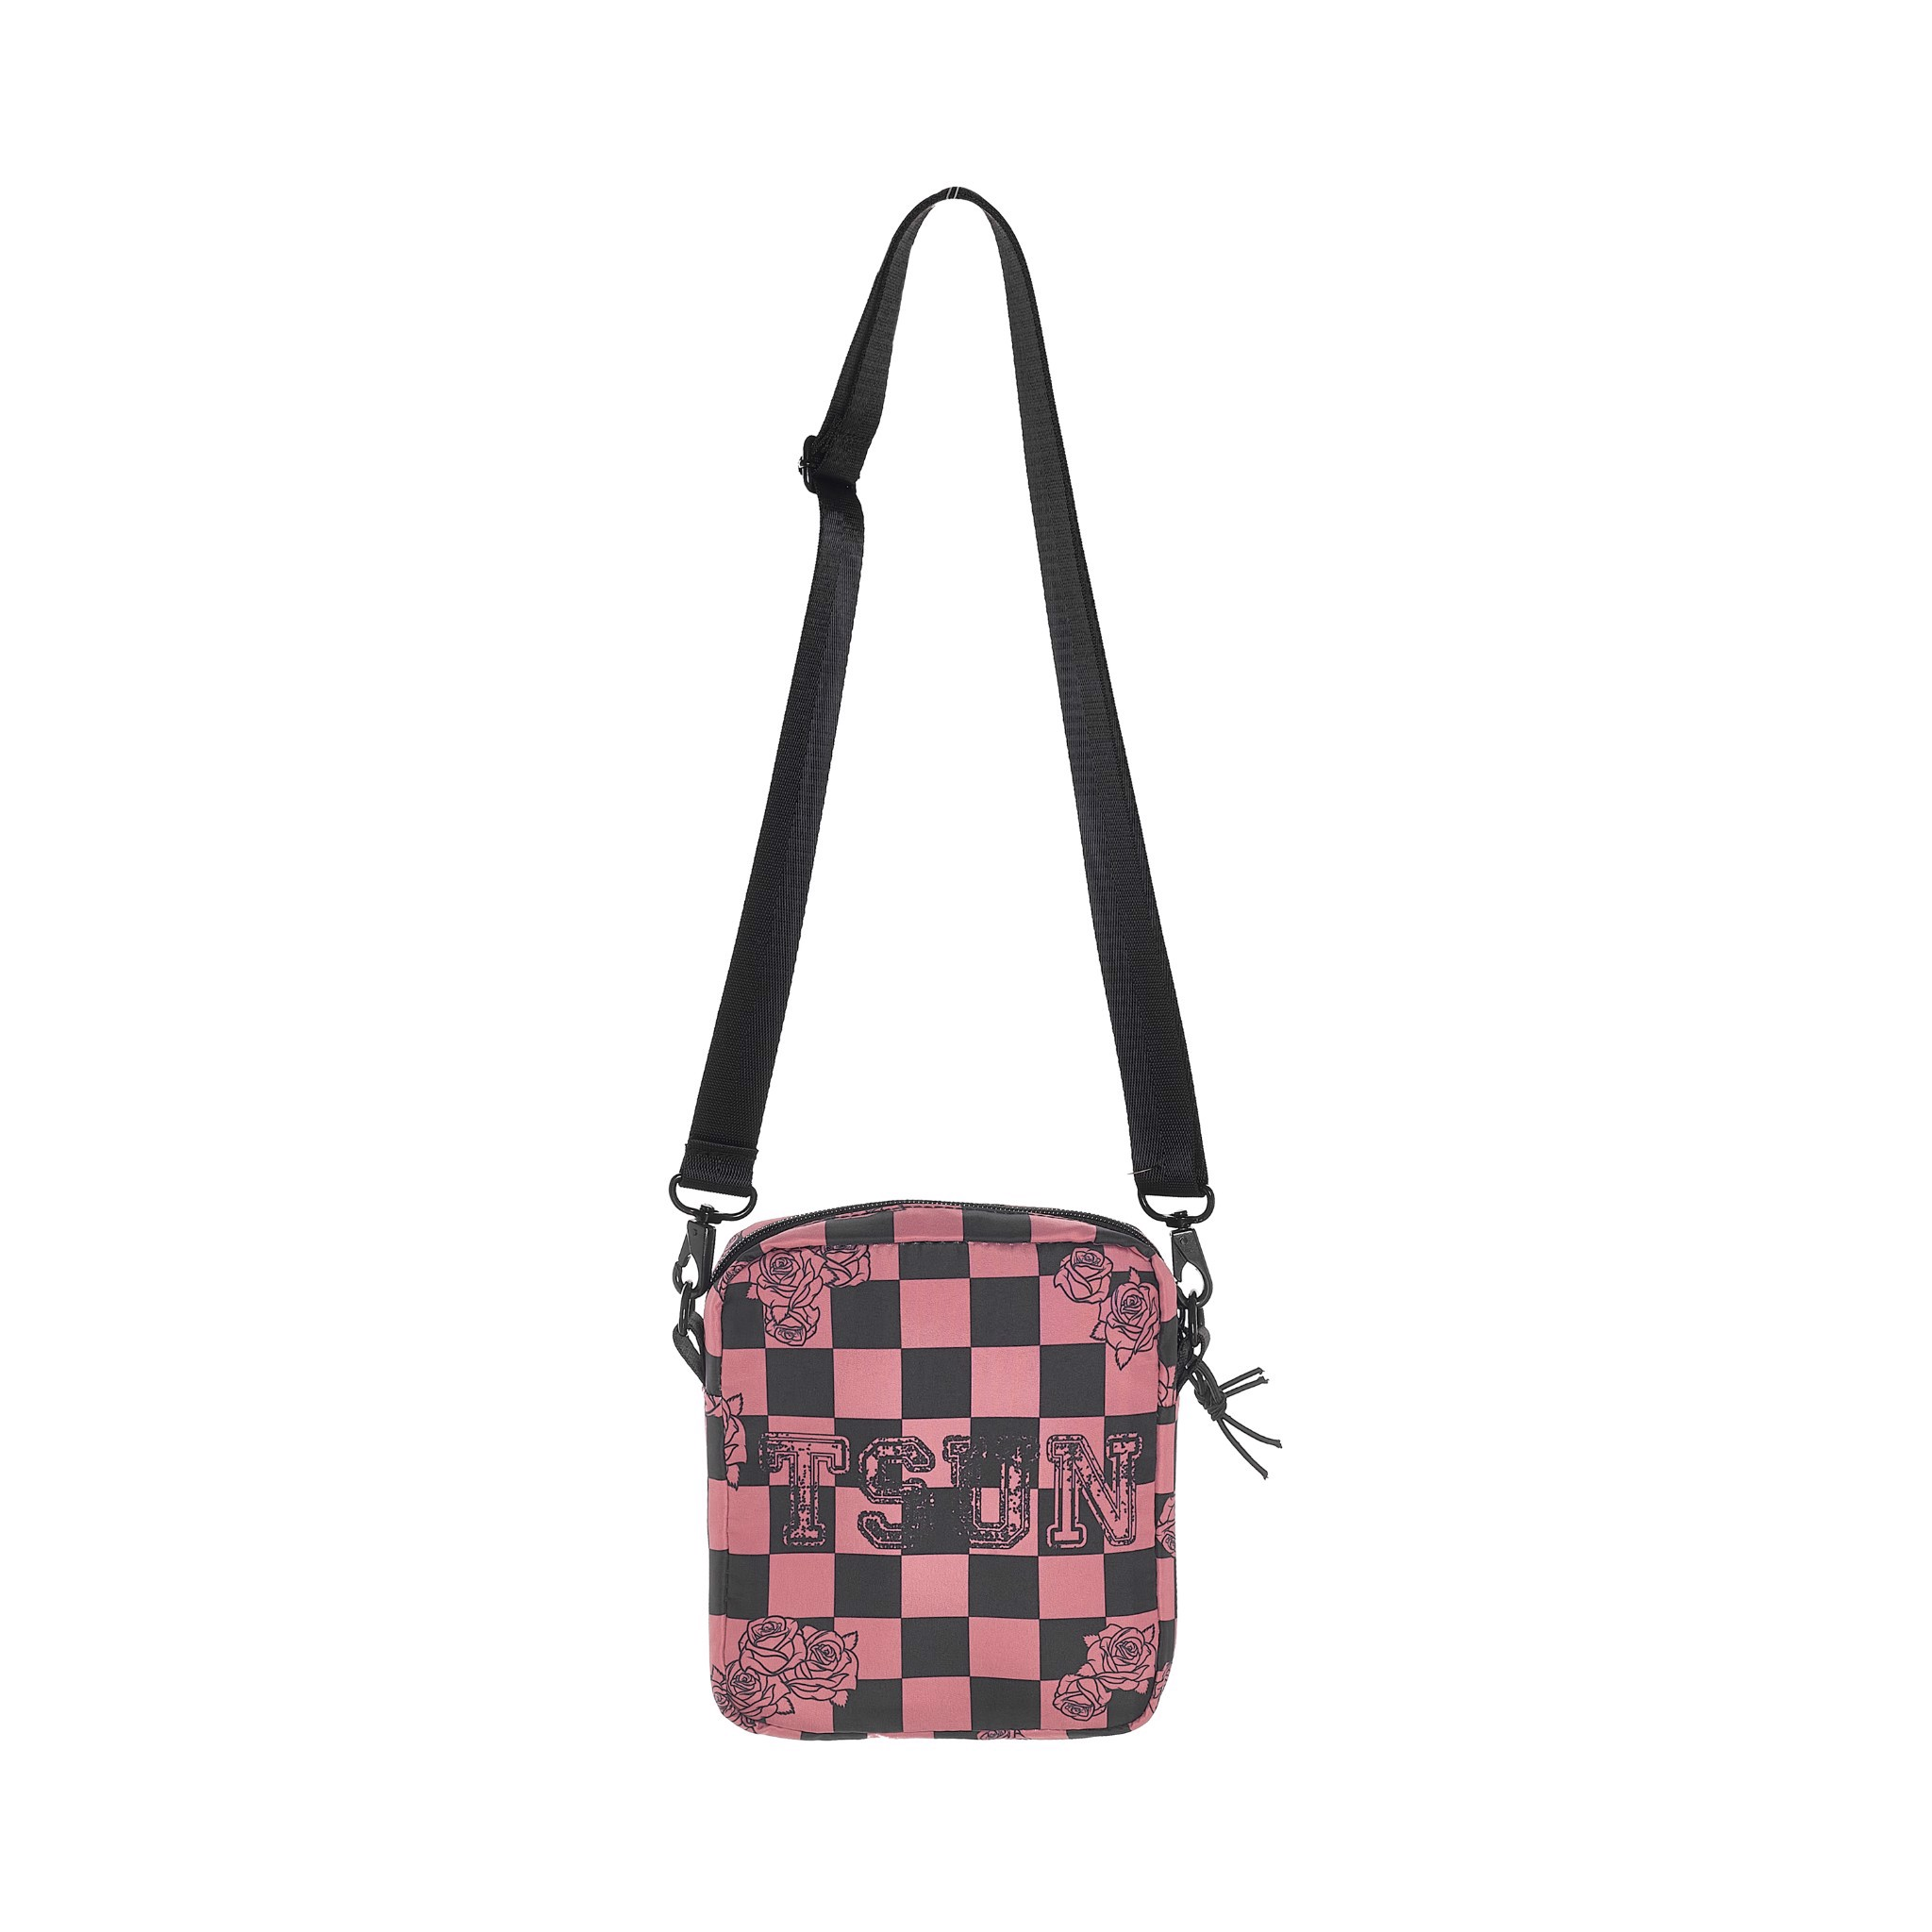 TSUN Mascot Shoulder Bag